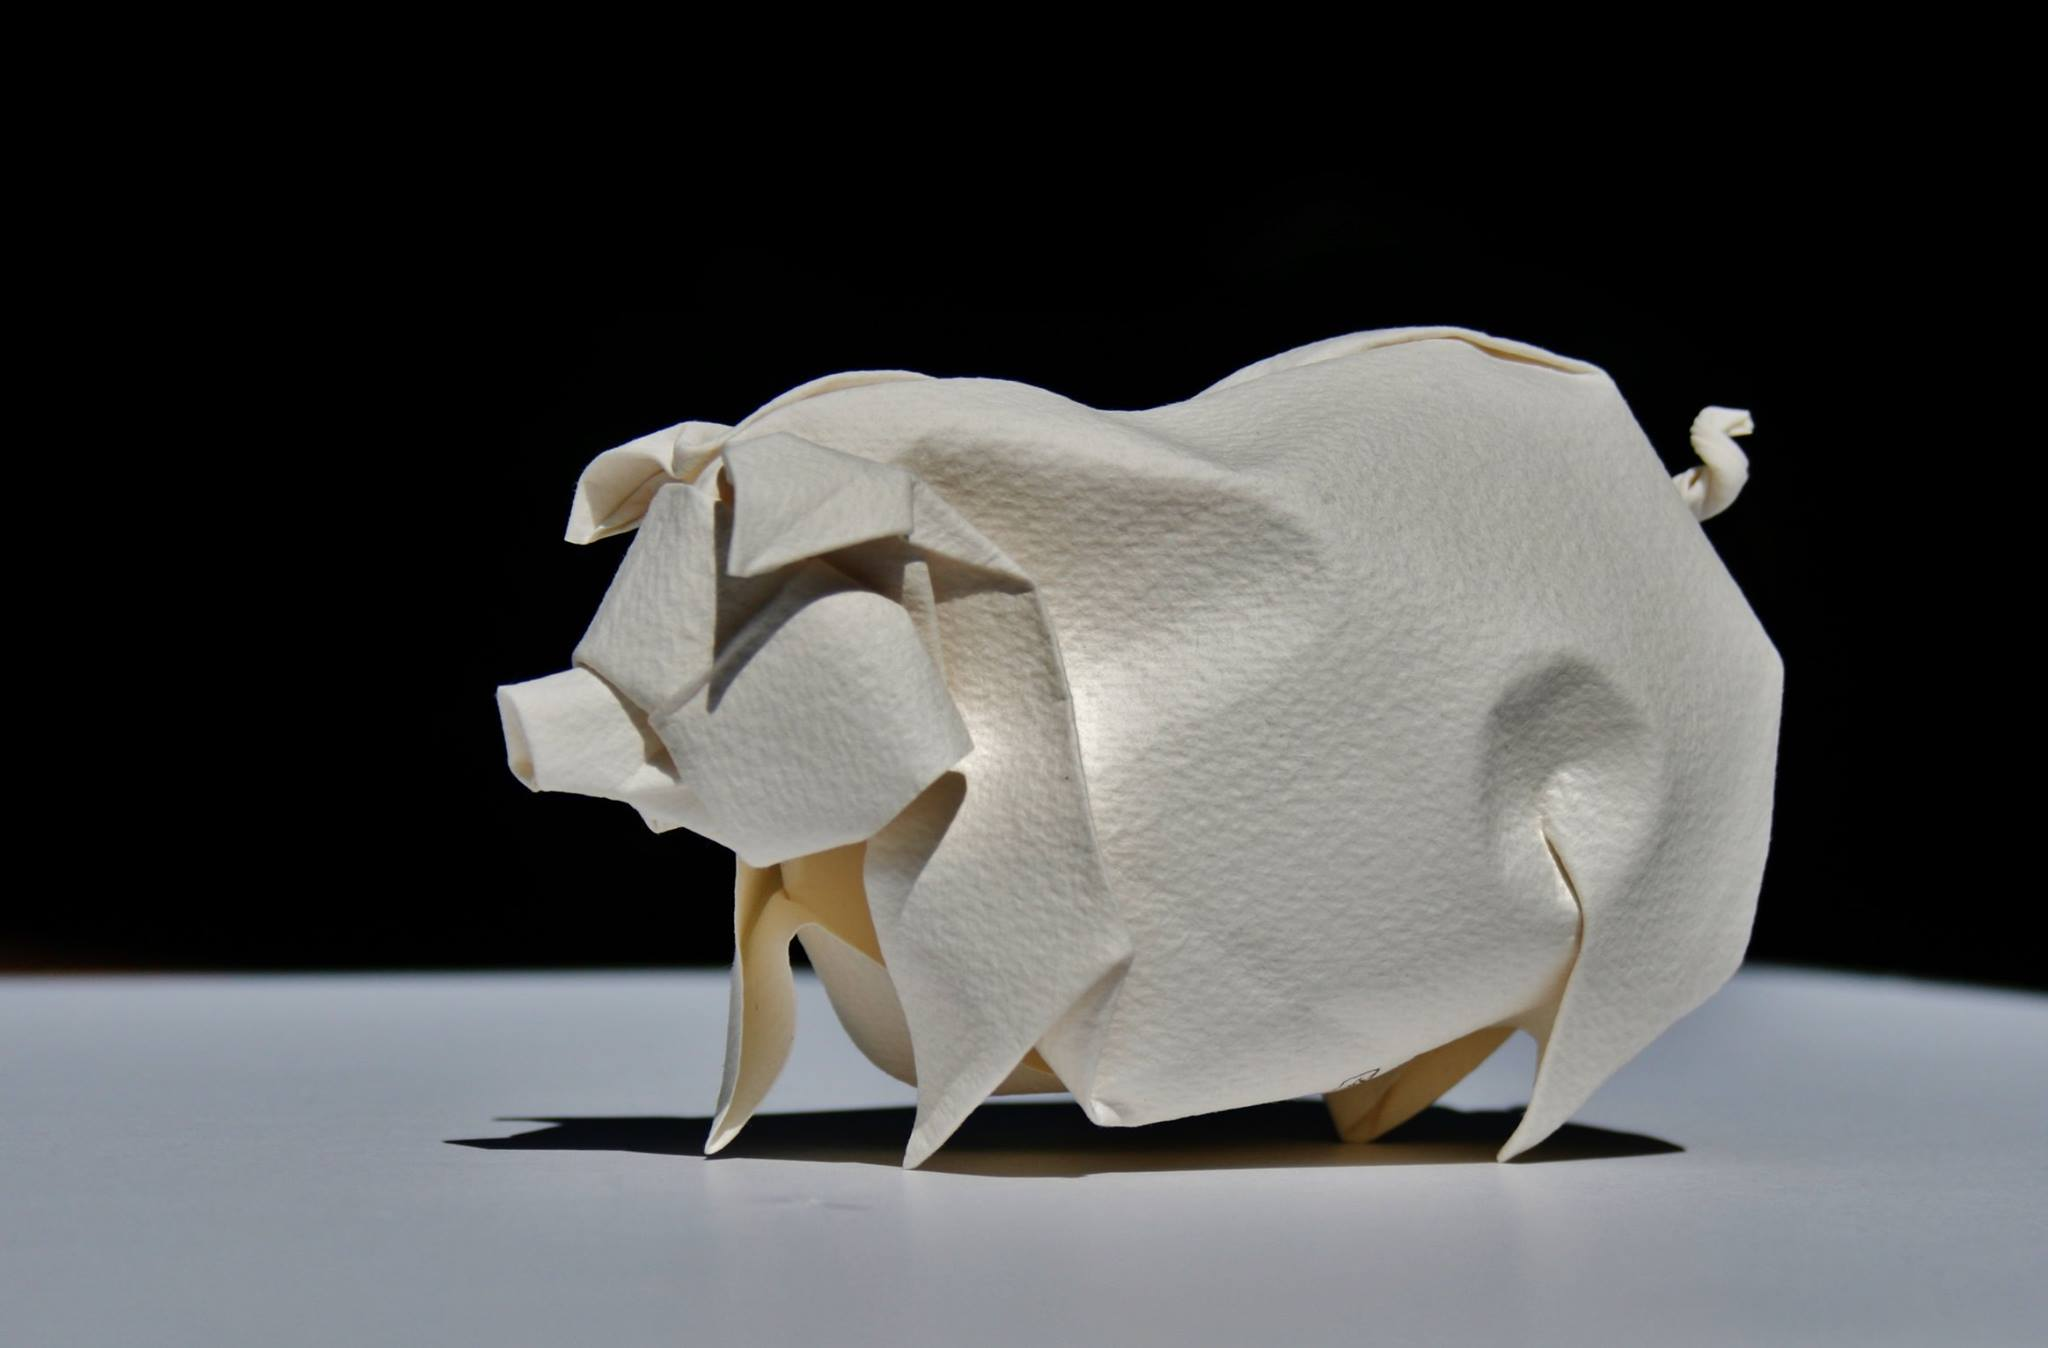 Curved Origami By Hoàng Tiến Quyết • Lazer Horse